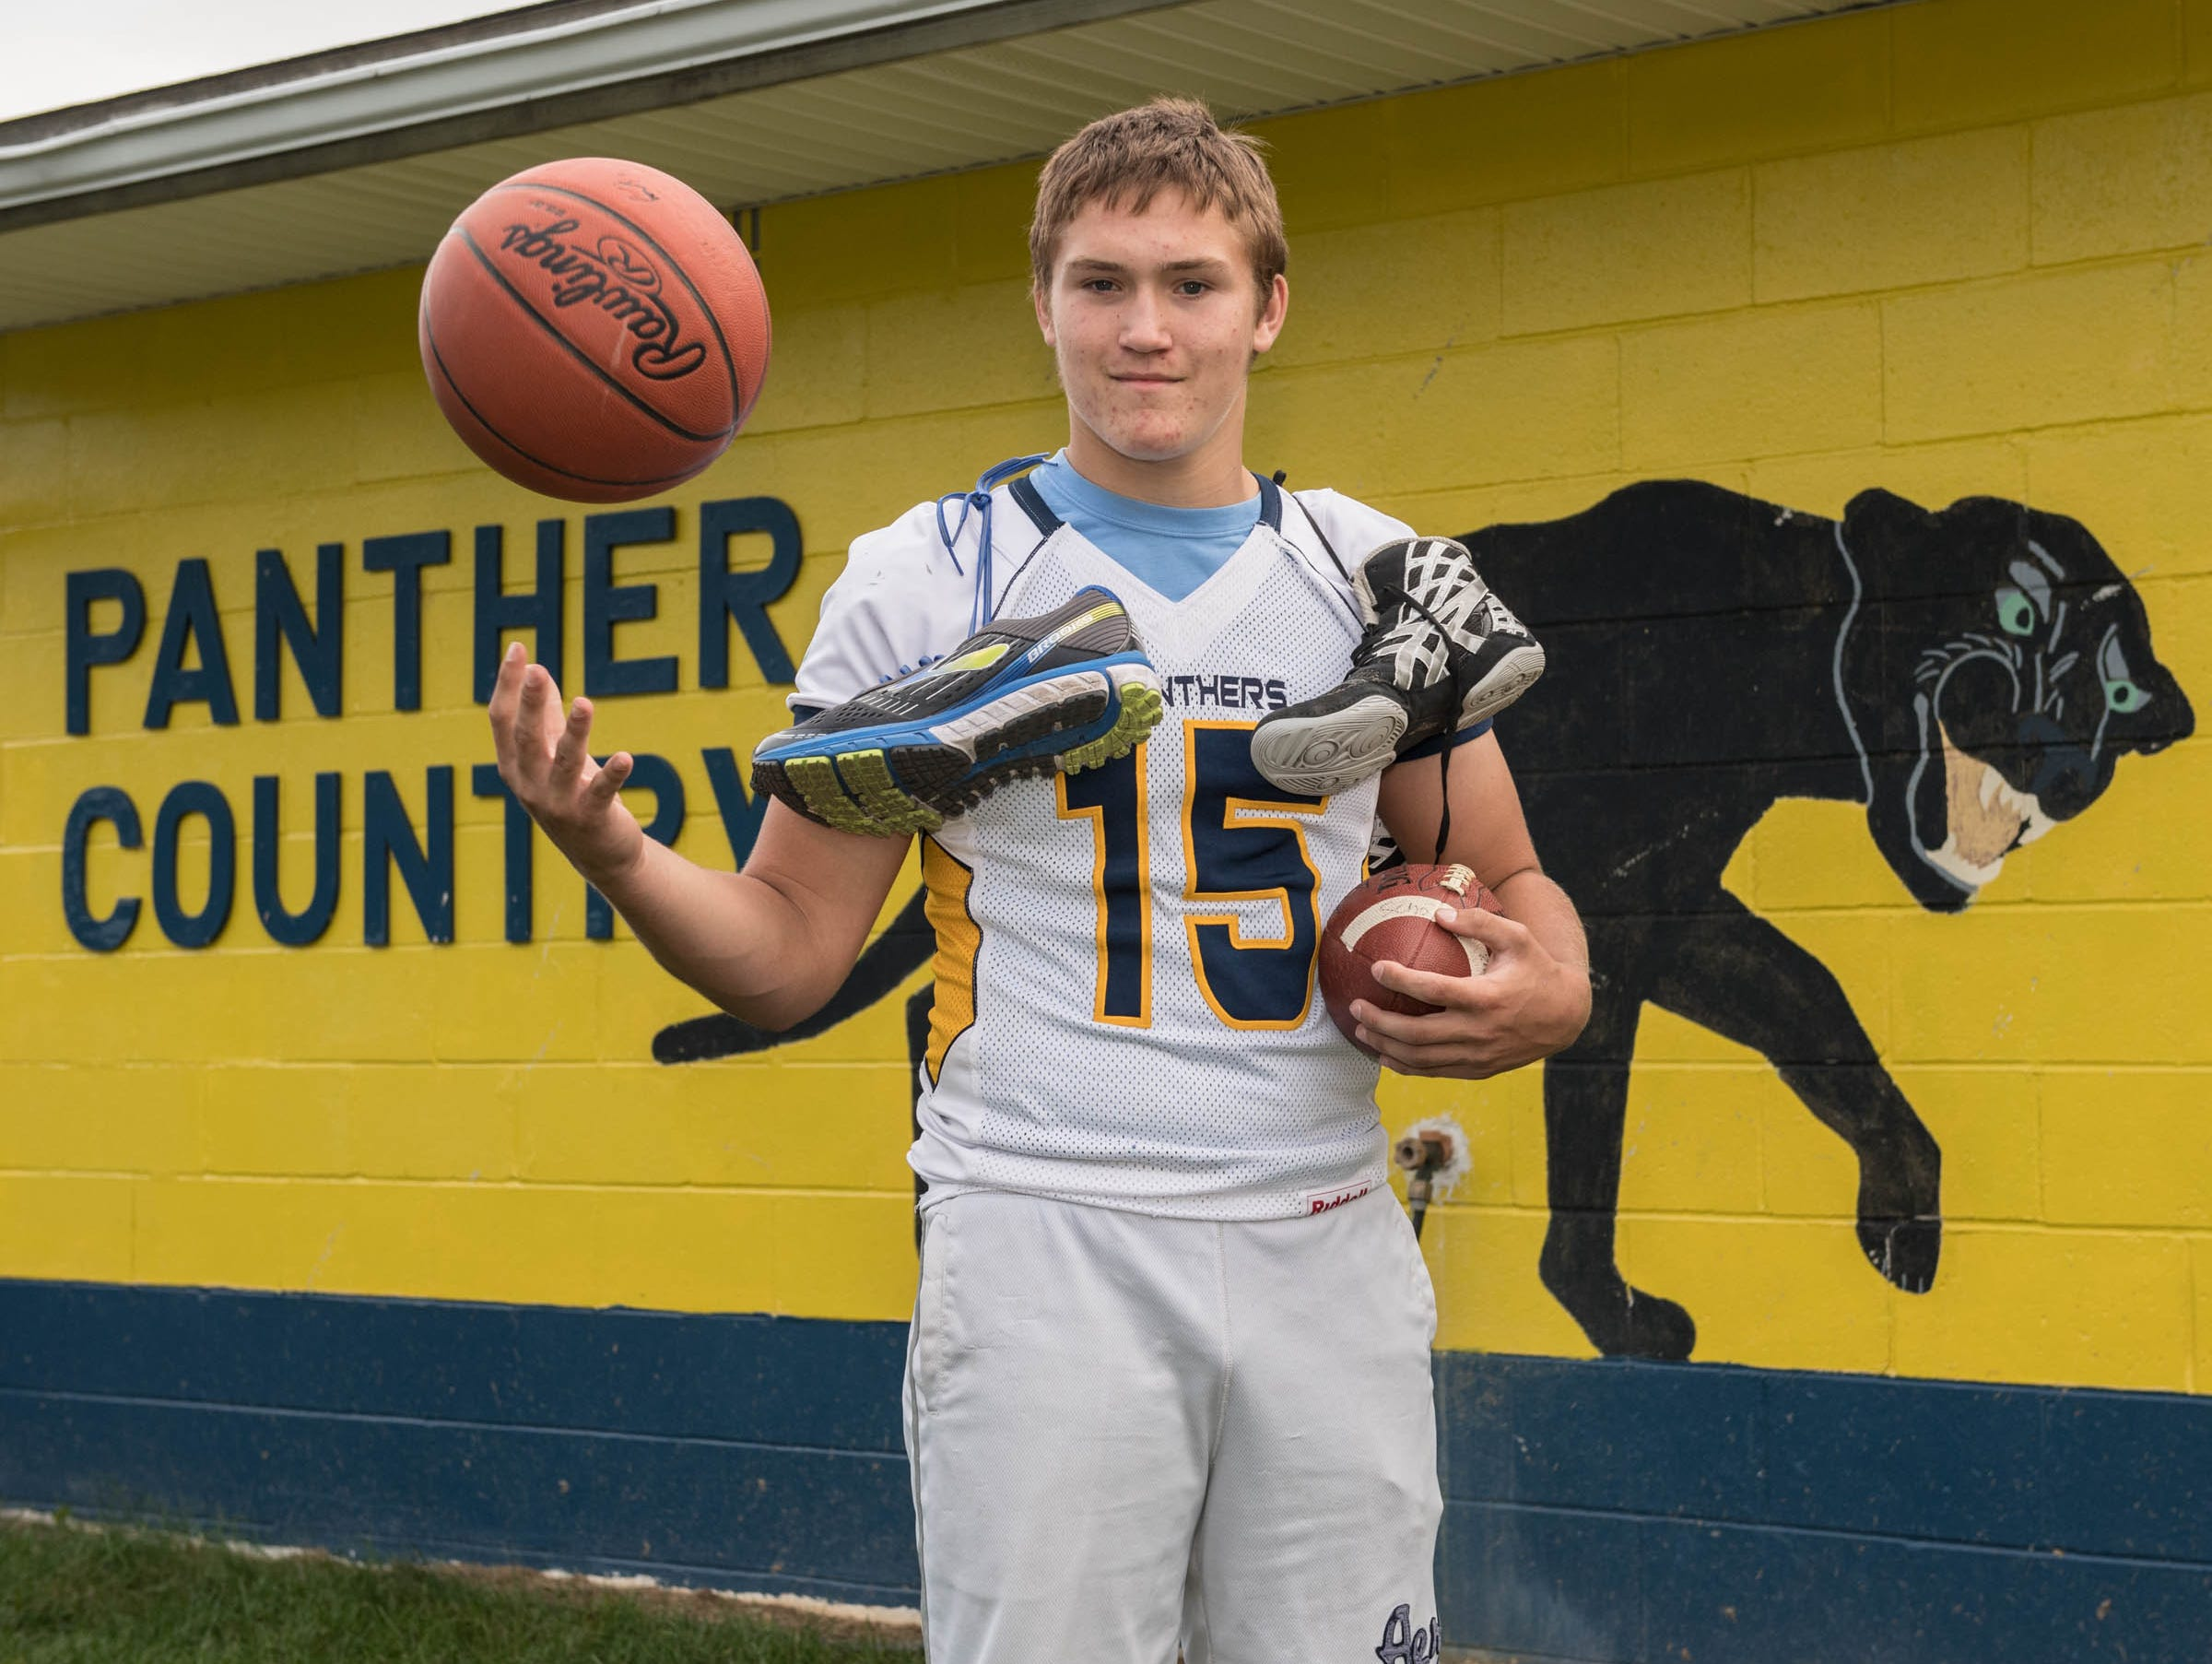 Zach Scholly of Climax-Scotts plays six varsity sports during the school year, including football, cross country, basketball, wrestling, track and golf.